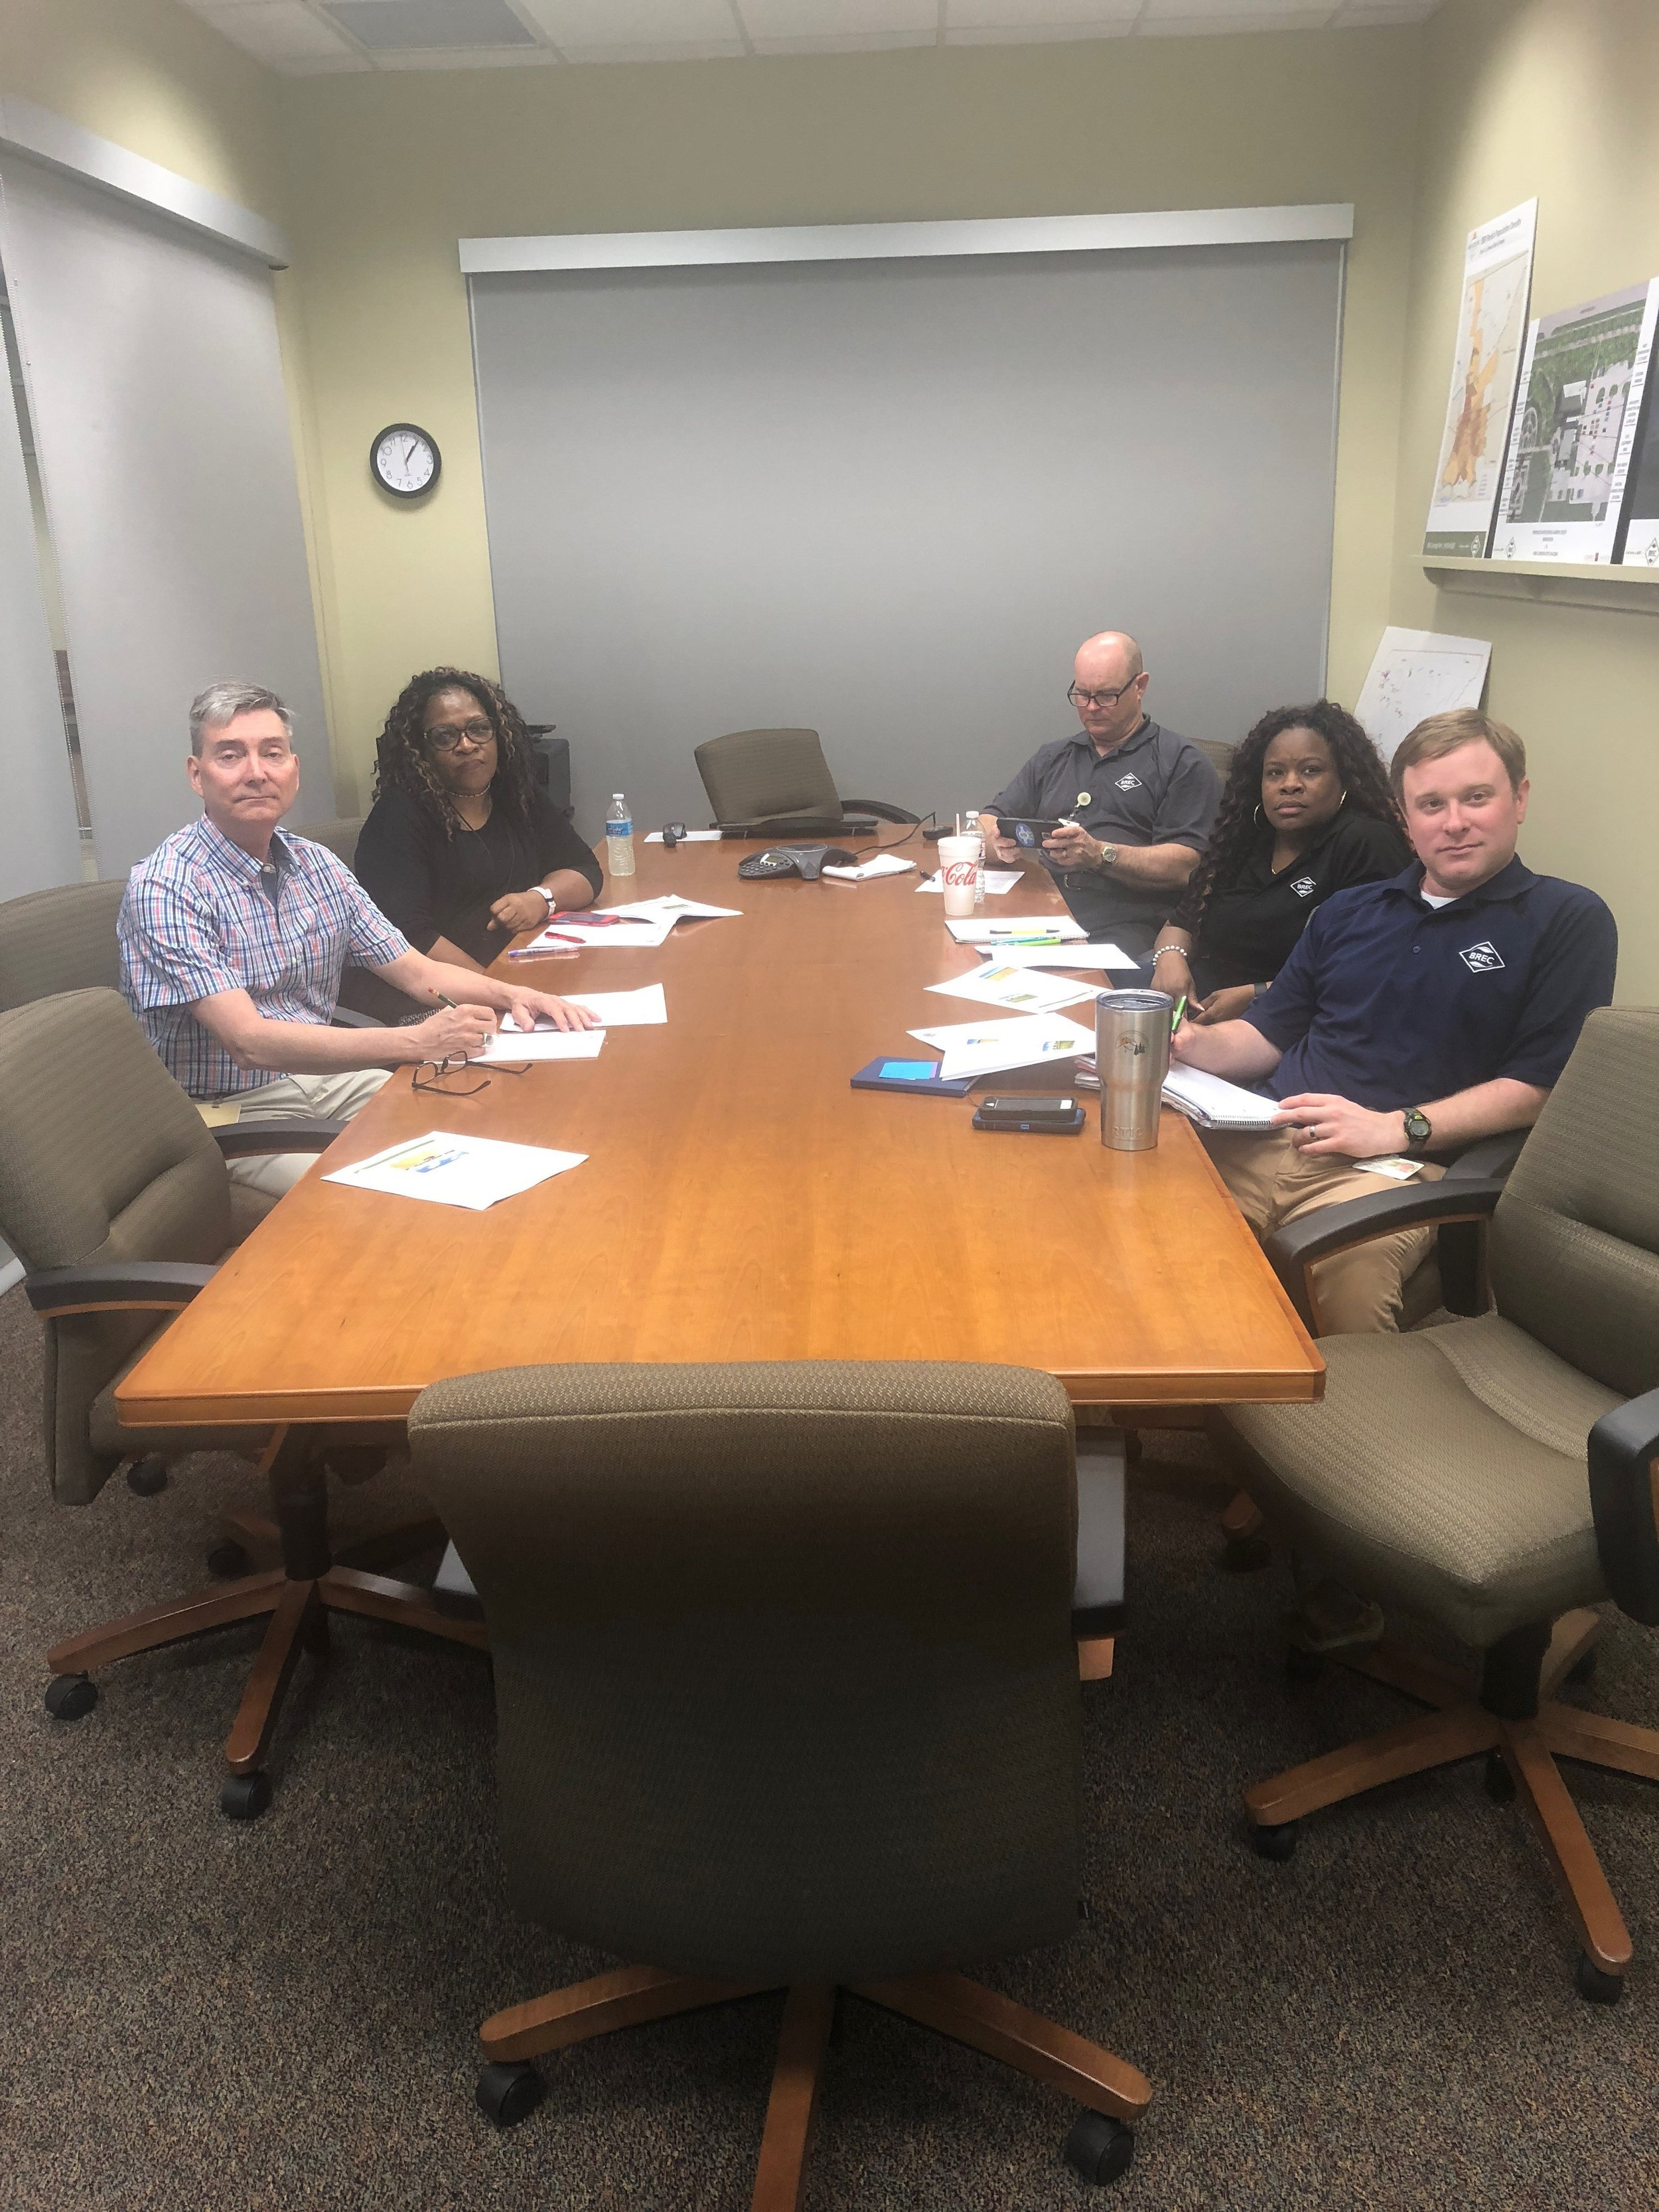 """""""Pictured clockwise from the left, BREC Foundation Executive Director, Carl Stages, BREC Assistant Director of Evaluation and Partnership Development, Diane Drake, BREC Assistant Director of Recreation (Athletics), Brett Weinberger, BREC Program Coordinator (Athletics), DeVeta Webb, and BREC Program Coordinator of Evaluation and Partnership Development, Michael King, participate in a webinar on the NFL Foundation Grassroots Program which awarded a $50,000 grant for lighting of the playing field behind the BREC Administration Building."""""""